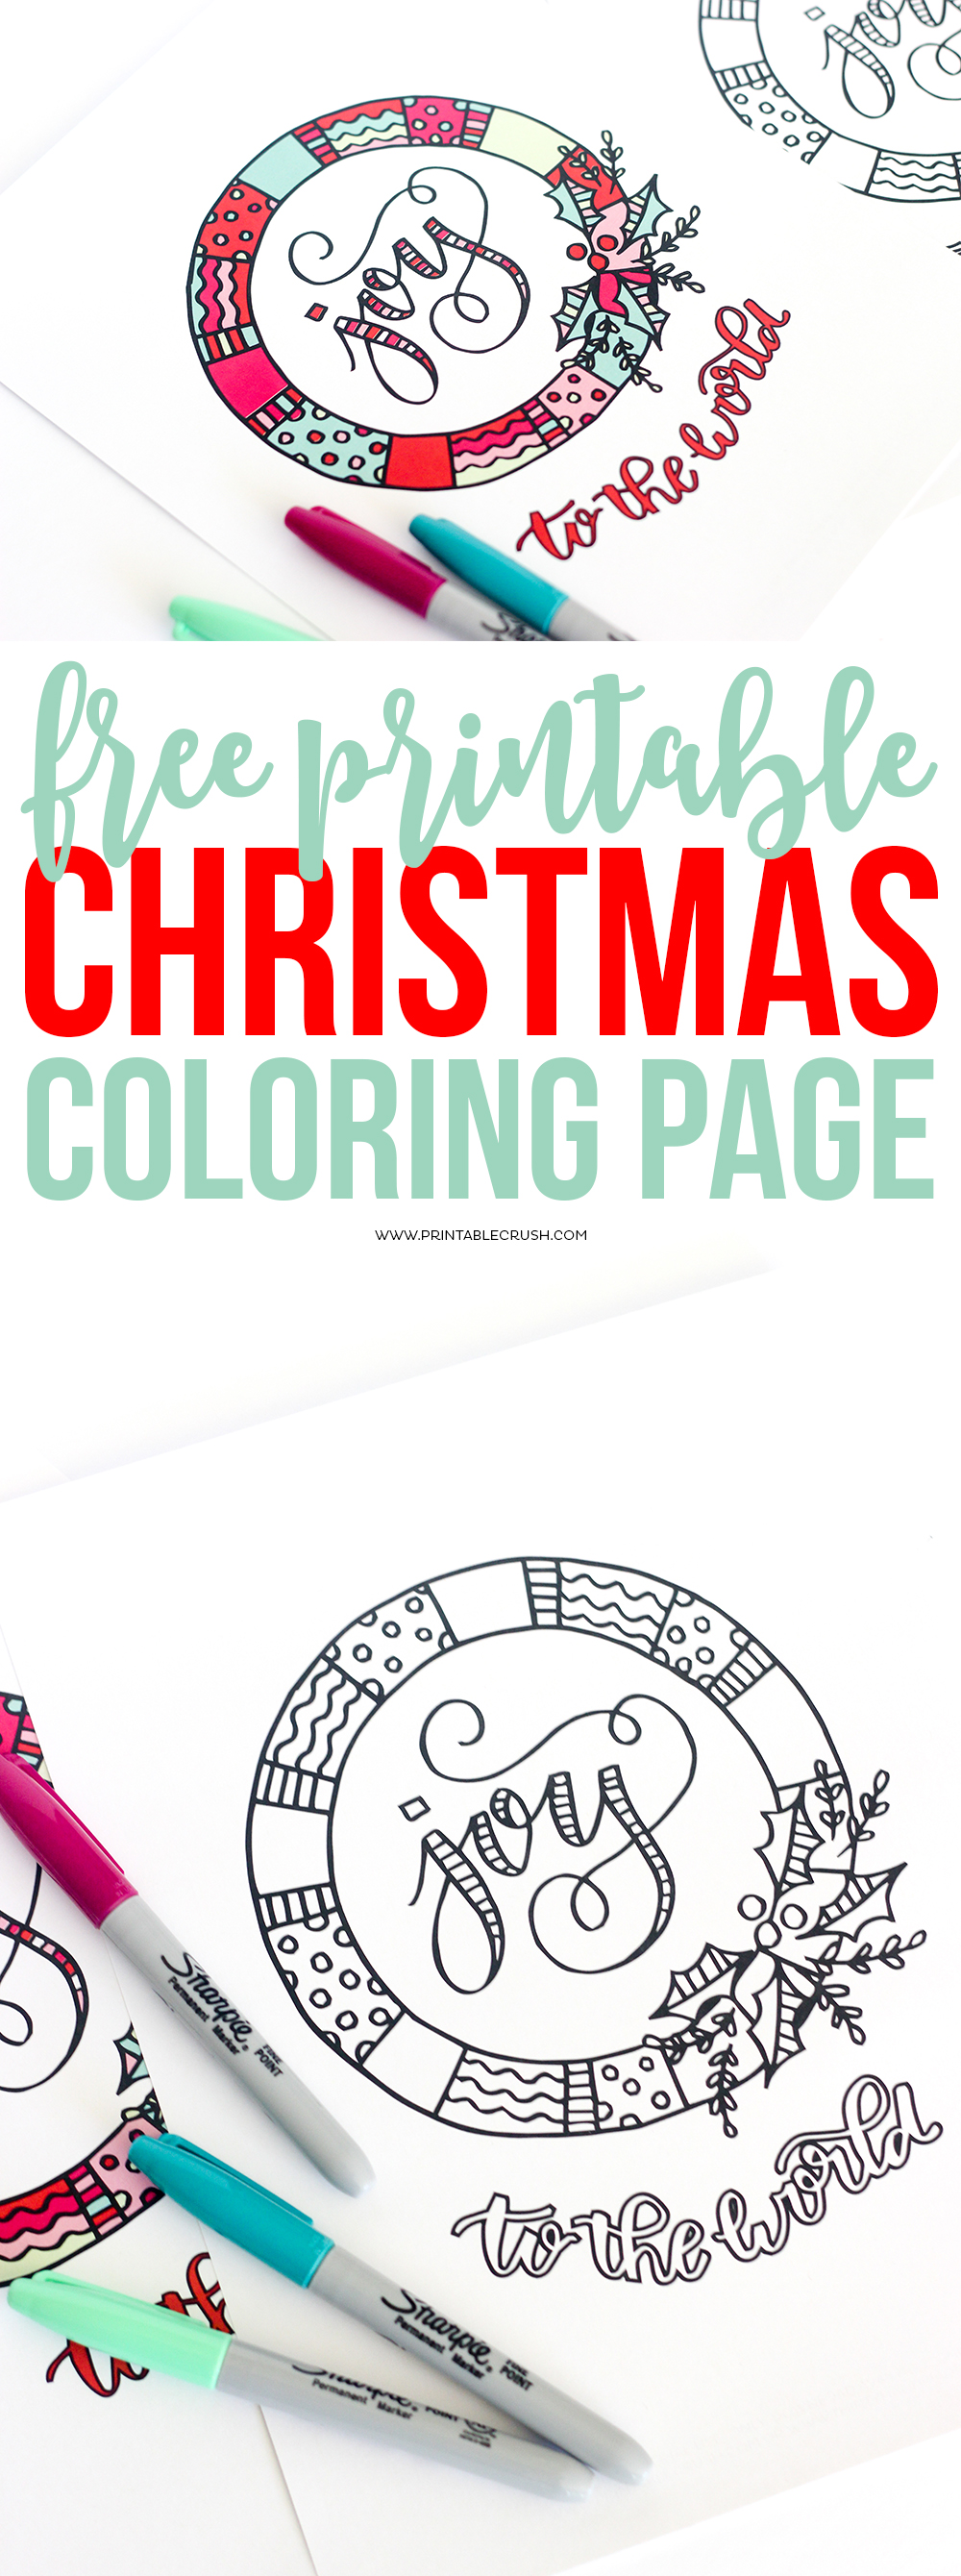 Print off some of these FREE Printable Christmas Coloring Page for a fun activity for kids or adults this holiday season! via @printablecrush